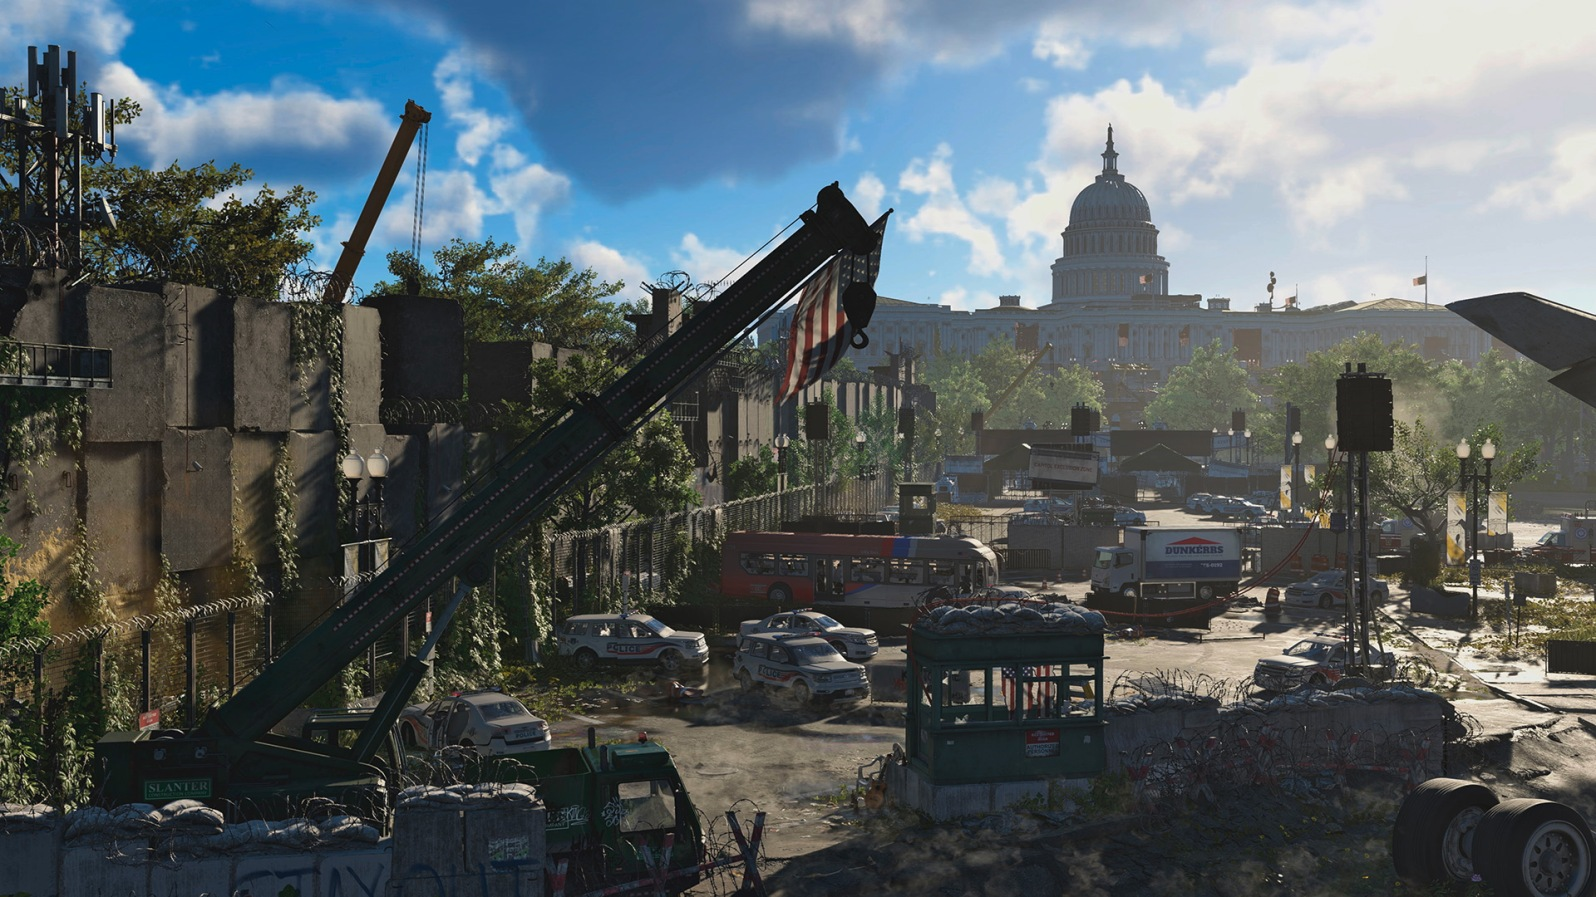 Quelle: Ubisoft - Tom Clancy's The Division 2 - Das neue Kriesengebiet ist Washington, D.C.